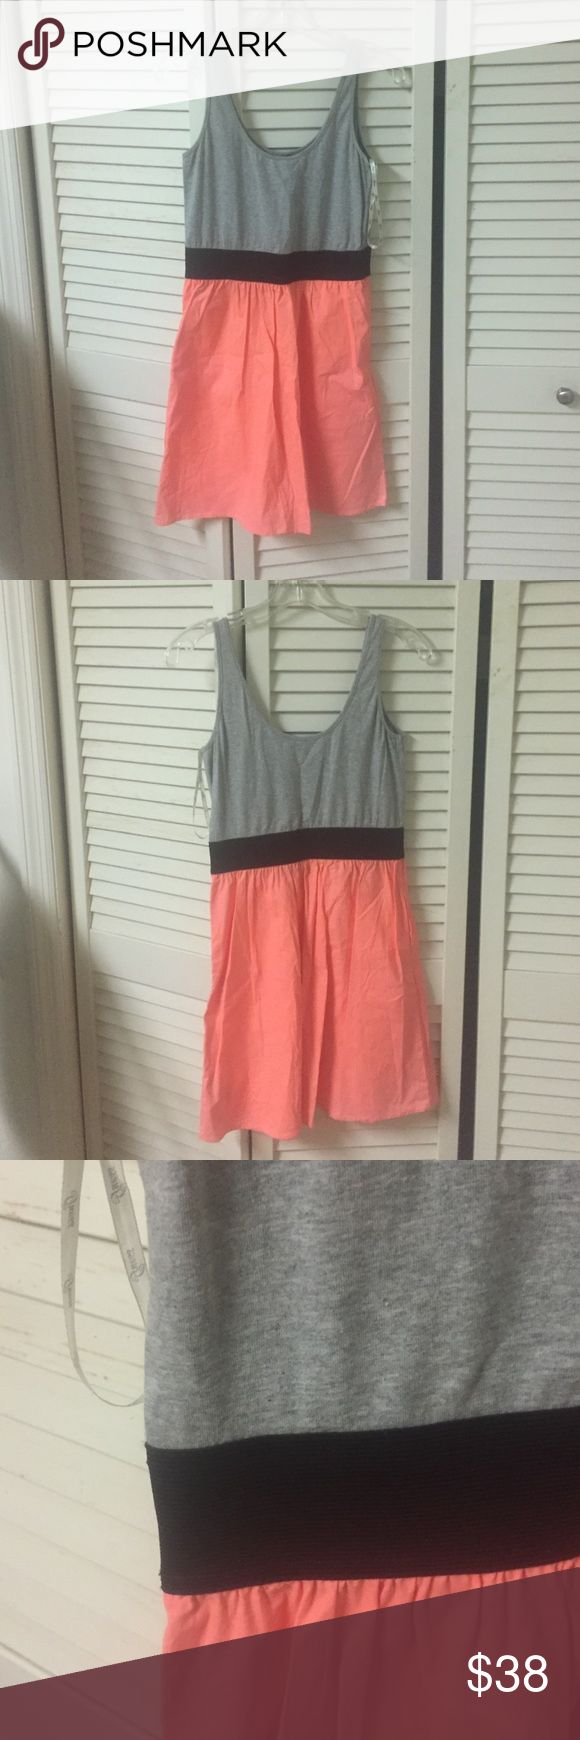 Gray, black, and coral guess dress Gray tank dress with black elastic band and a coral skirt from guess Guess Dresses Mini